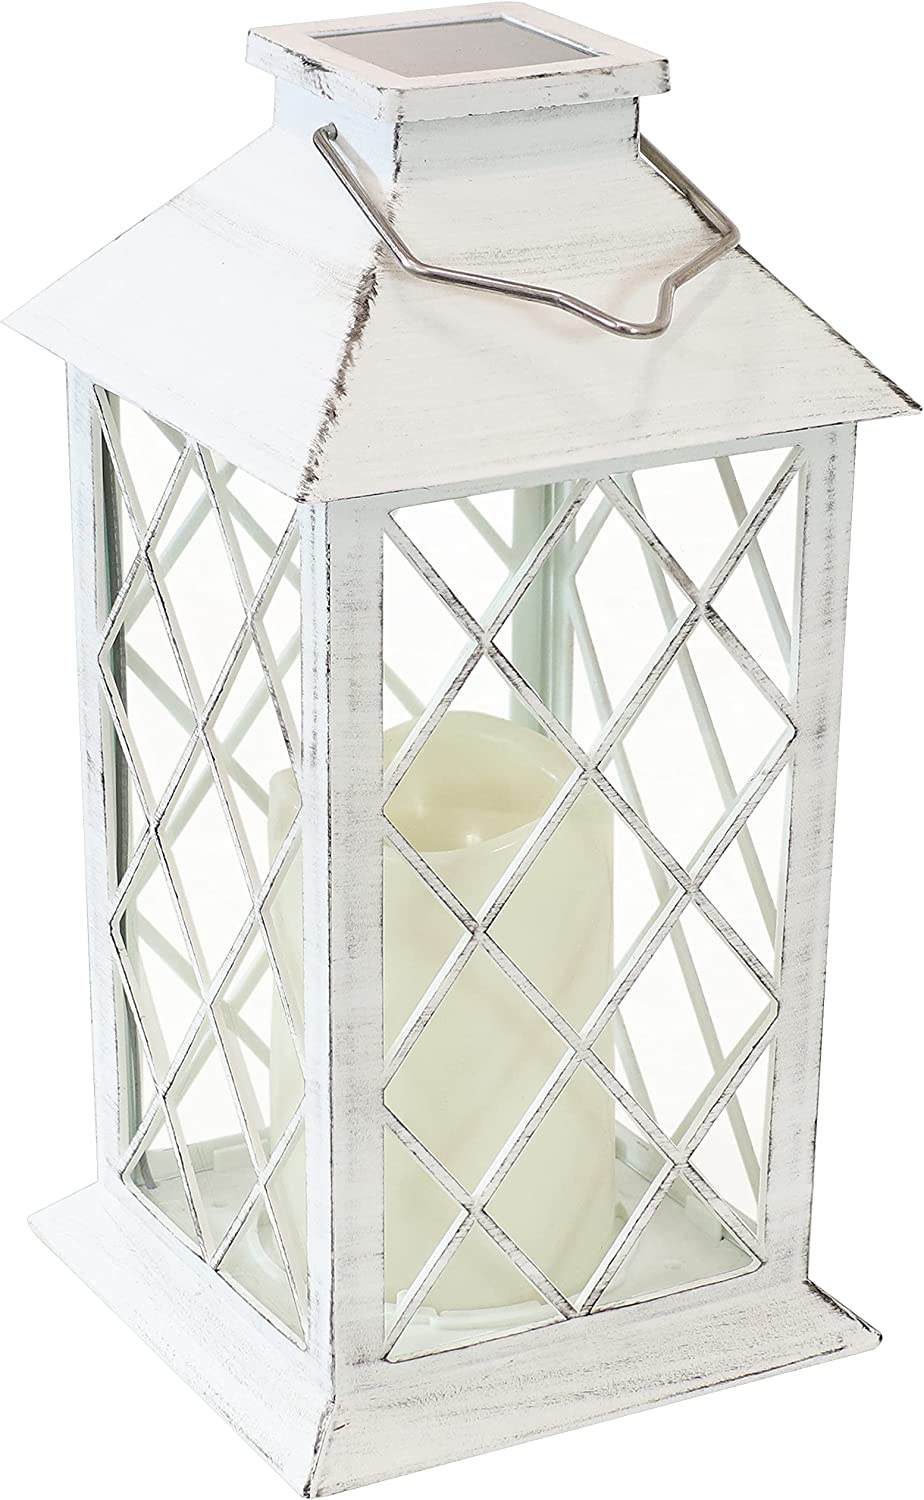 Sunnydaze Concord Outdoor Solar LED Decorative Candle Lantern - Rustic Farmhouse Decor for Patio, Porch, Deck and Garden - Tabletop and Hanging Outside Light - White - 11-Inch